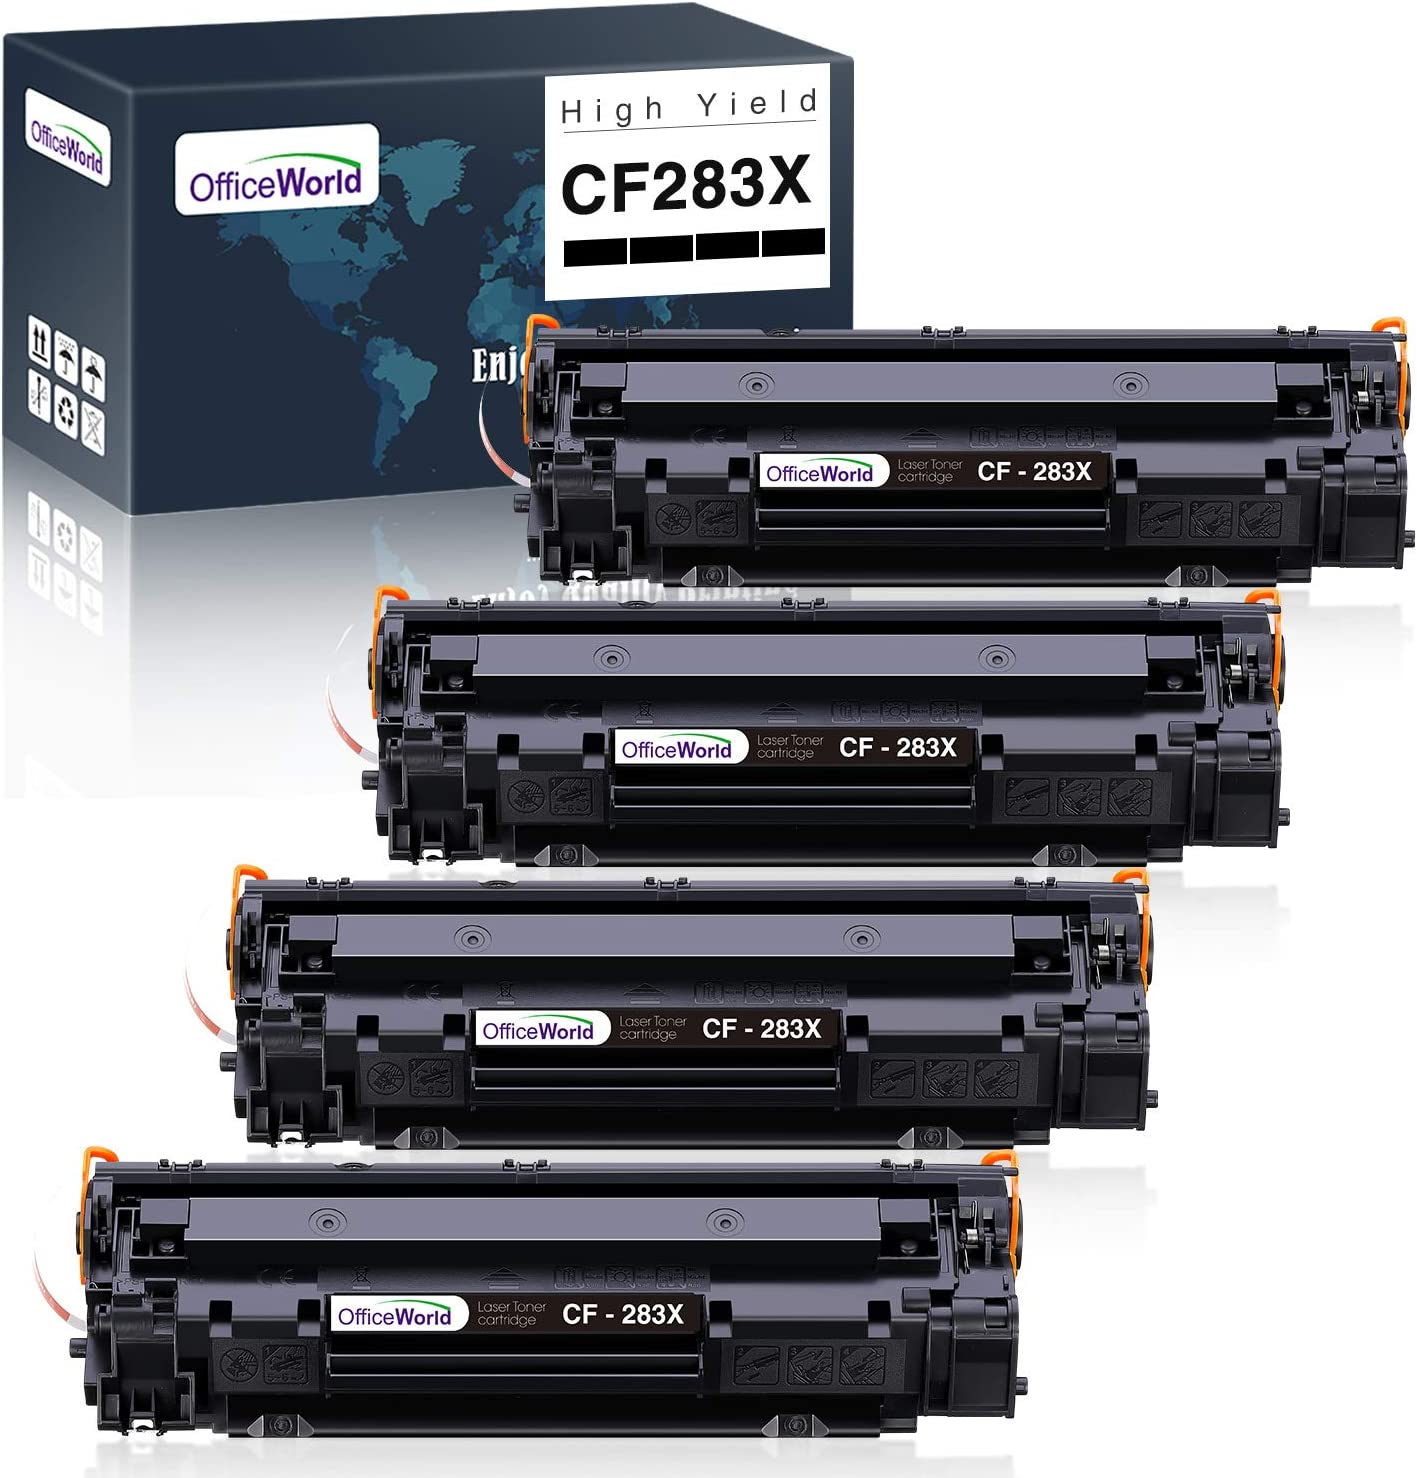 OfficeWorld 83X CF283X Compatible Toner Cartridge Replacement for HP 83X CF283X 83A CF283A (Black, 4-Pack), for HP Laserjet Pro M201dw, M127fw, M125fw, M125fn, M225dn, M225dw Printer, High Yield